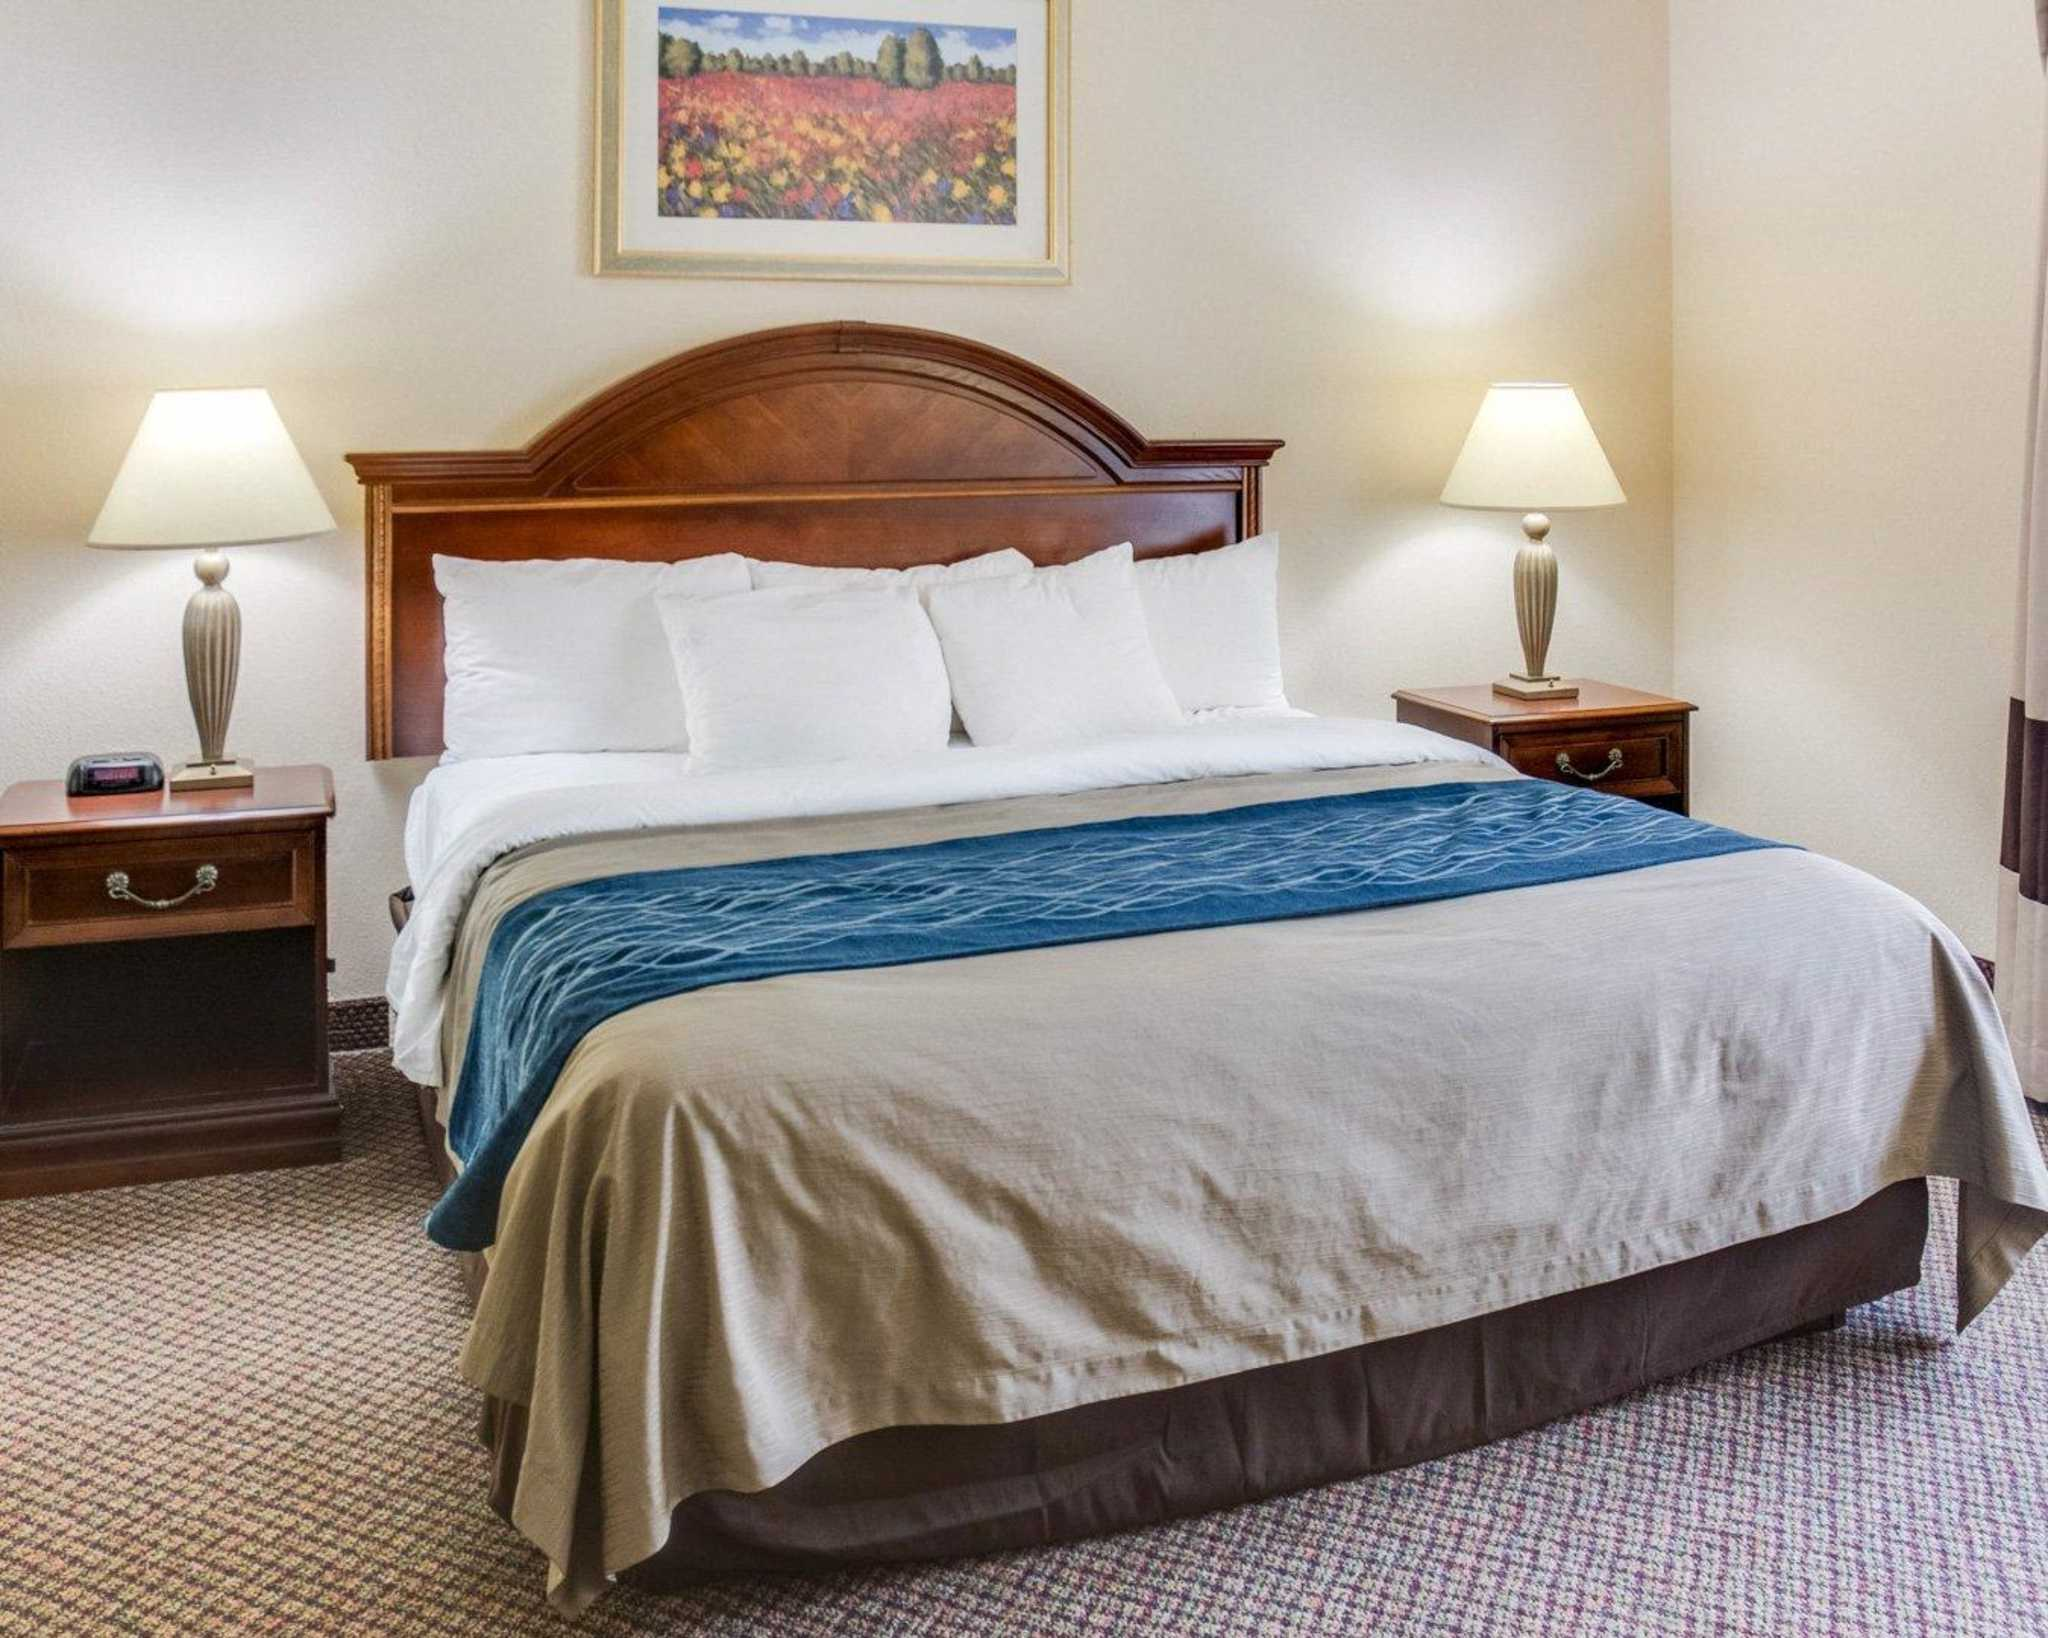 Quality Inn Olde Town Portsmouth Virginia